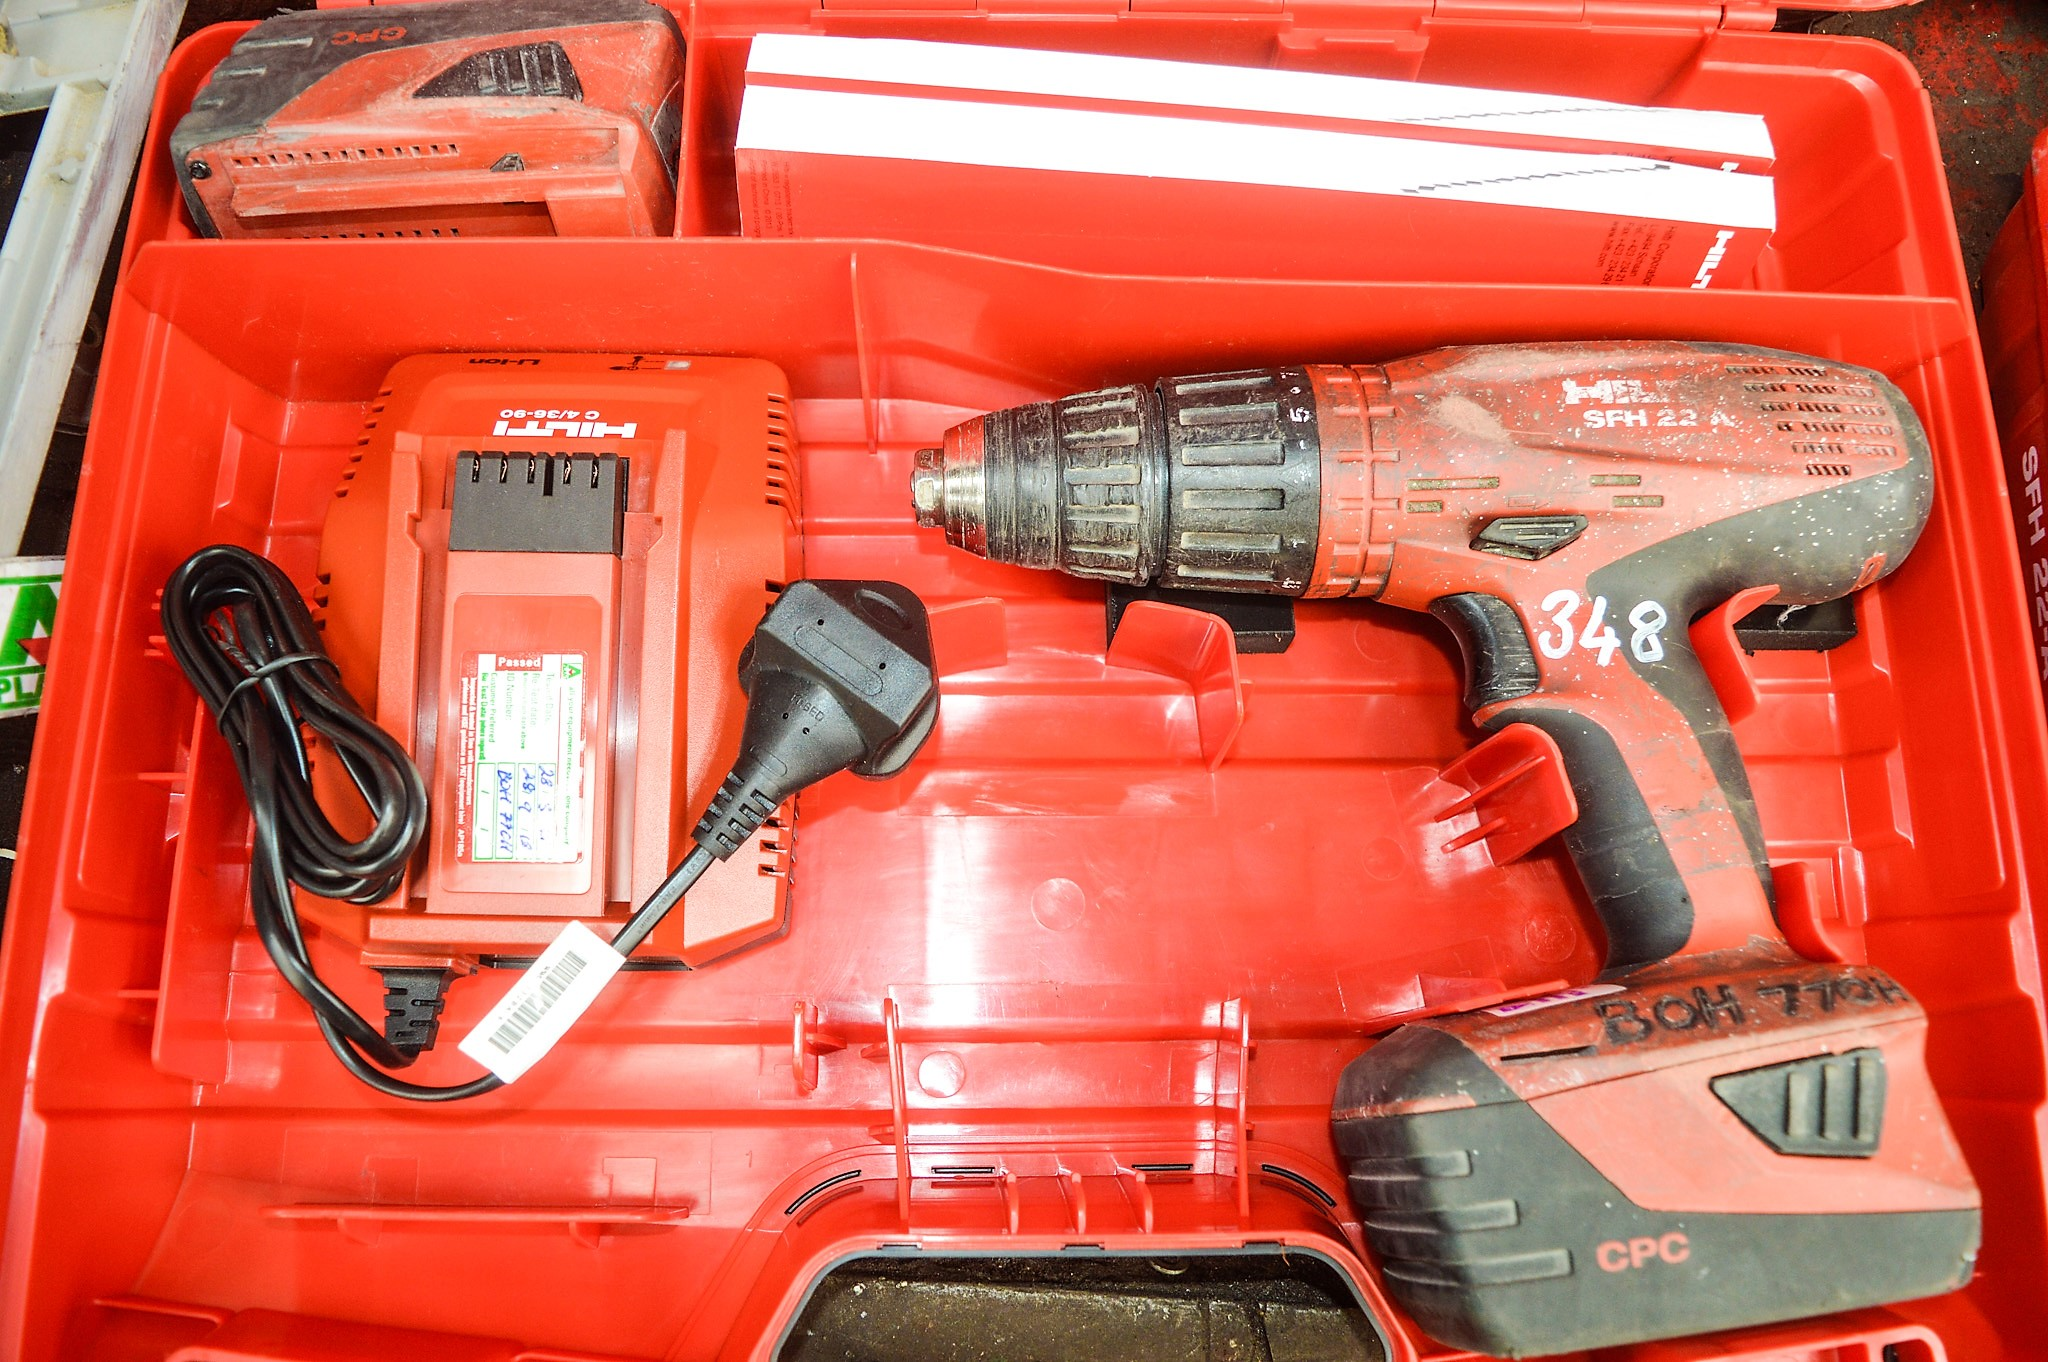 hilti sfh22 a 22v cordless power drill c w charger 2. Black Bedroom Furniture Sets. Home Design Ideas